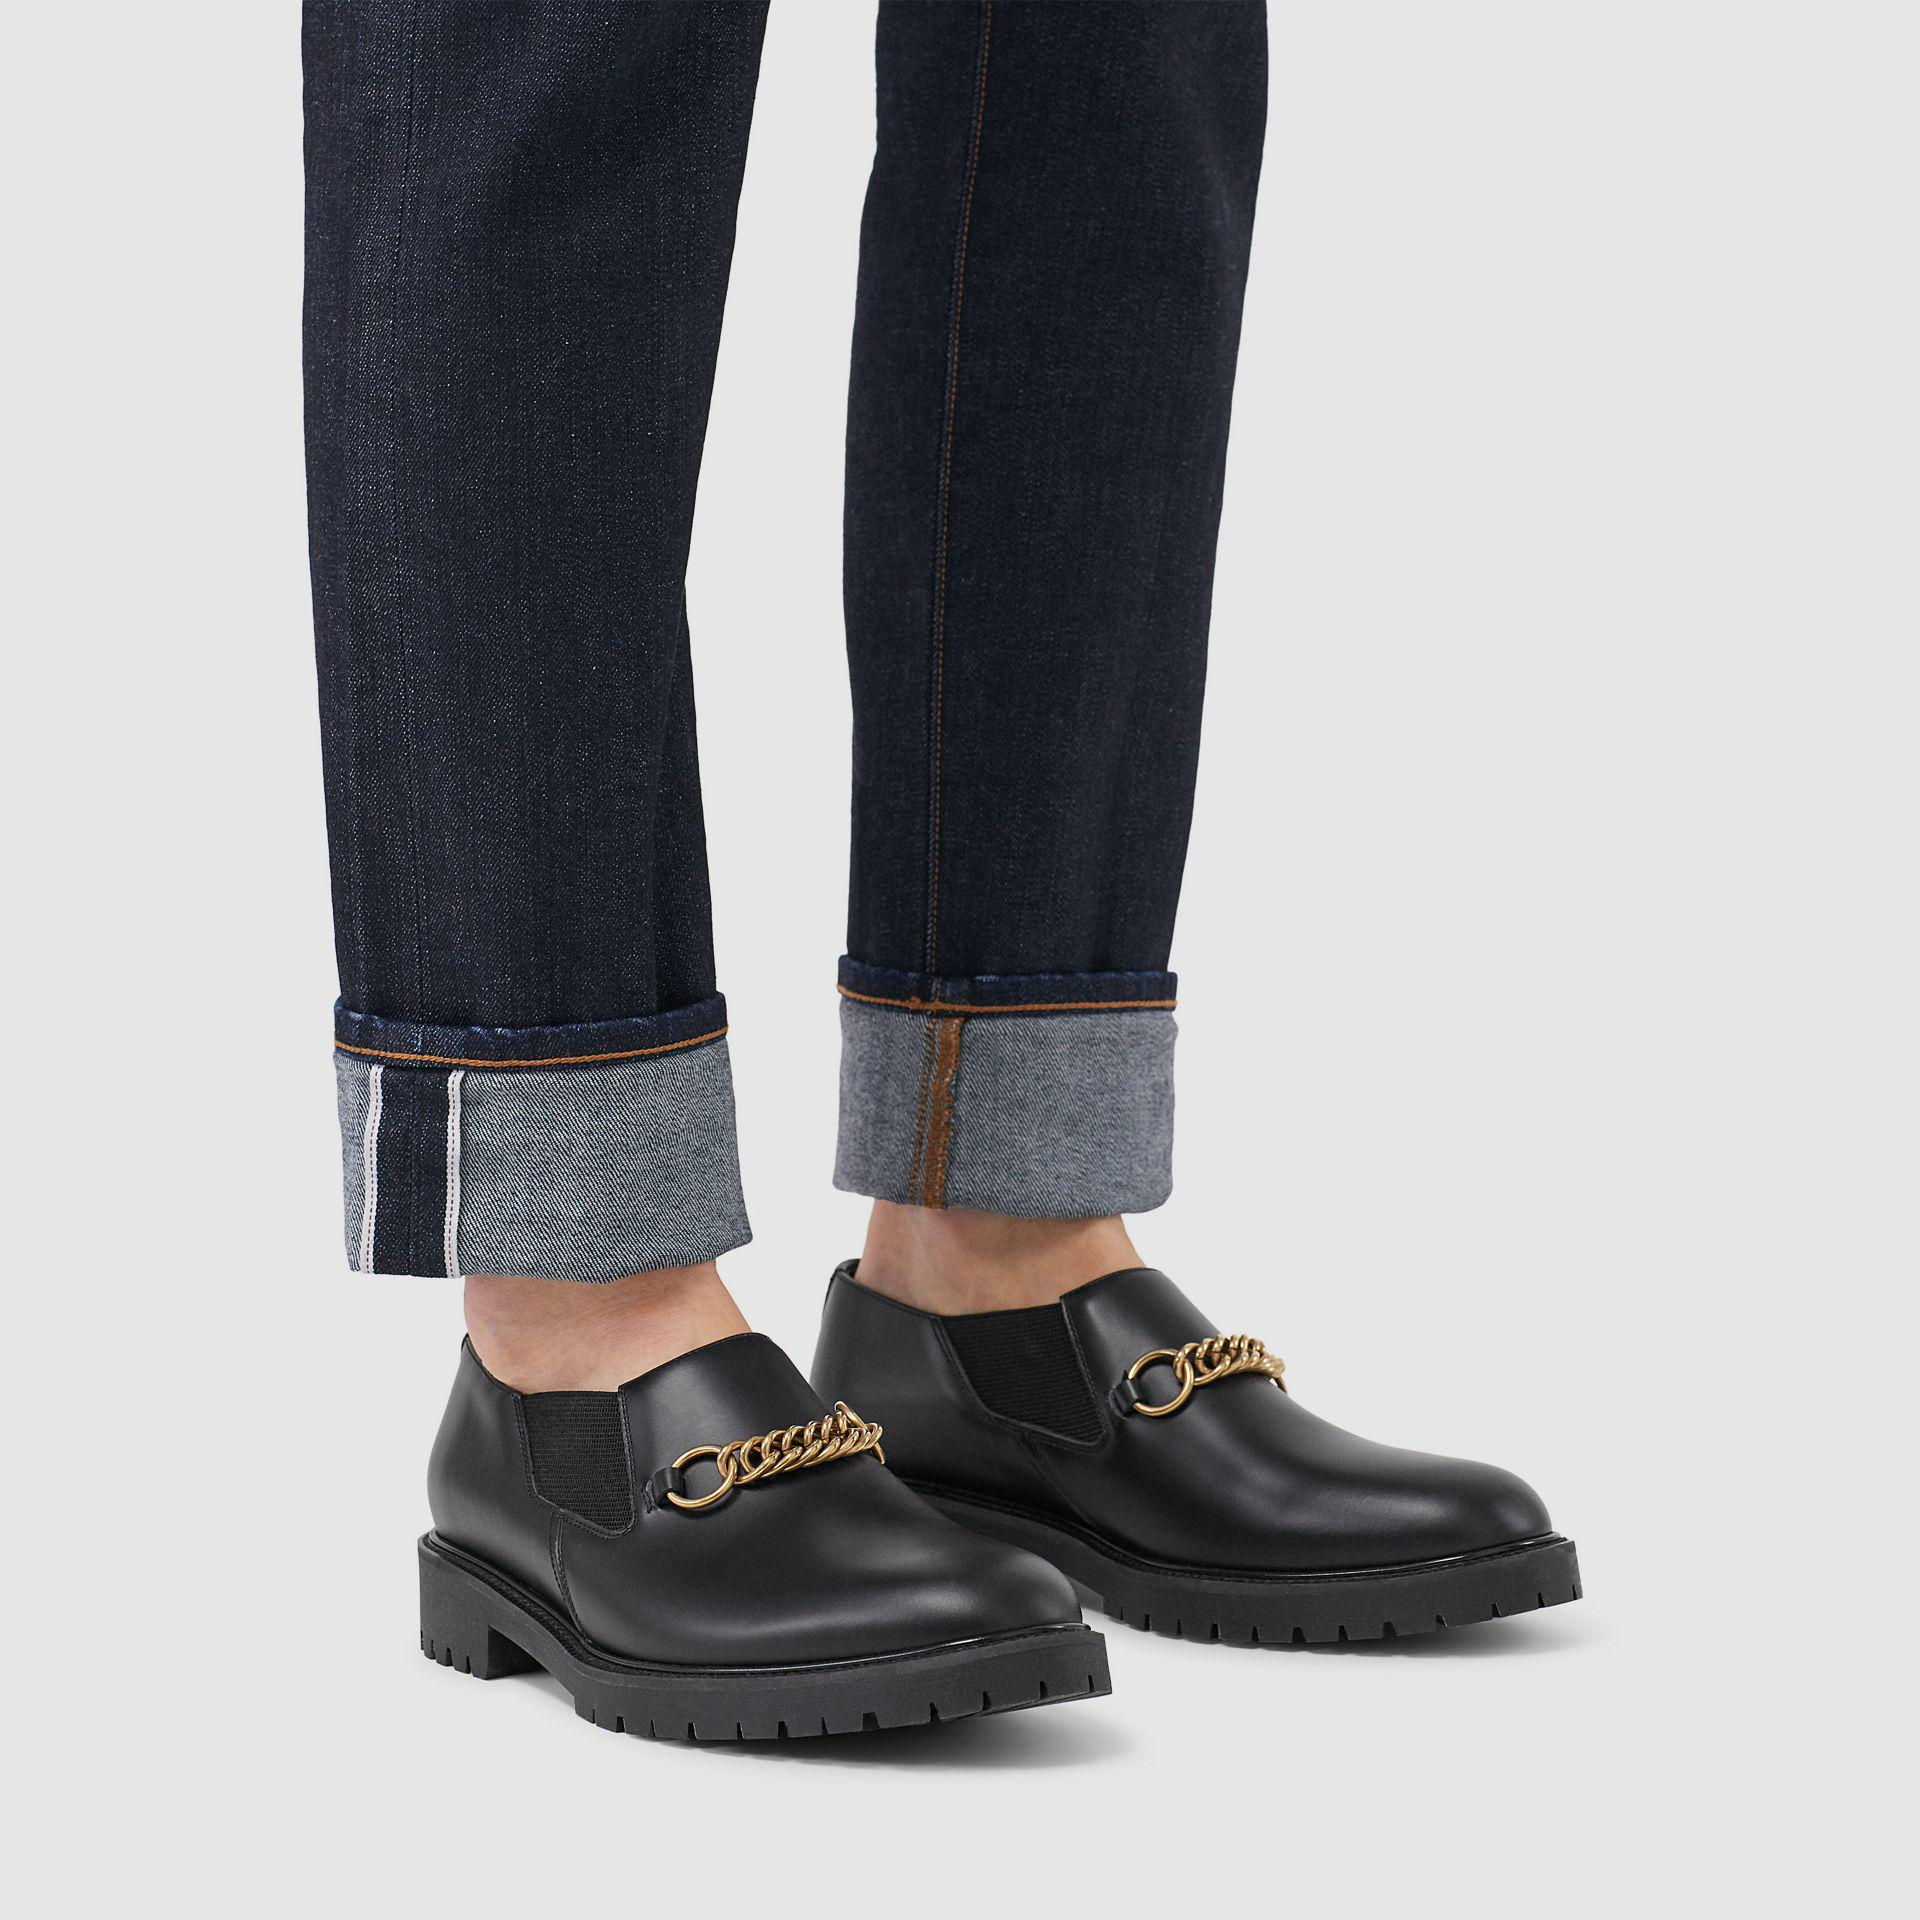 3ea5ce08f25 Lyst - Burberry The Perforated Leather Link Loafer in Black for Men